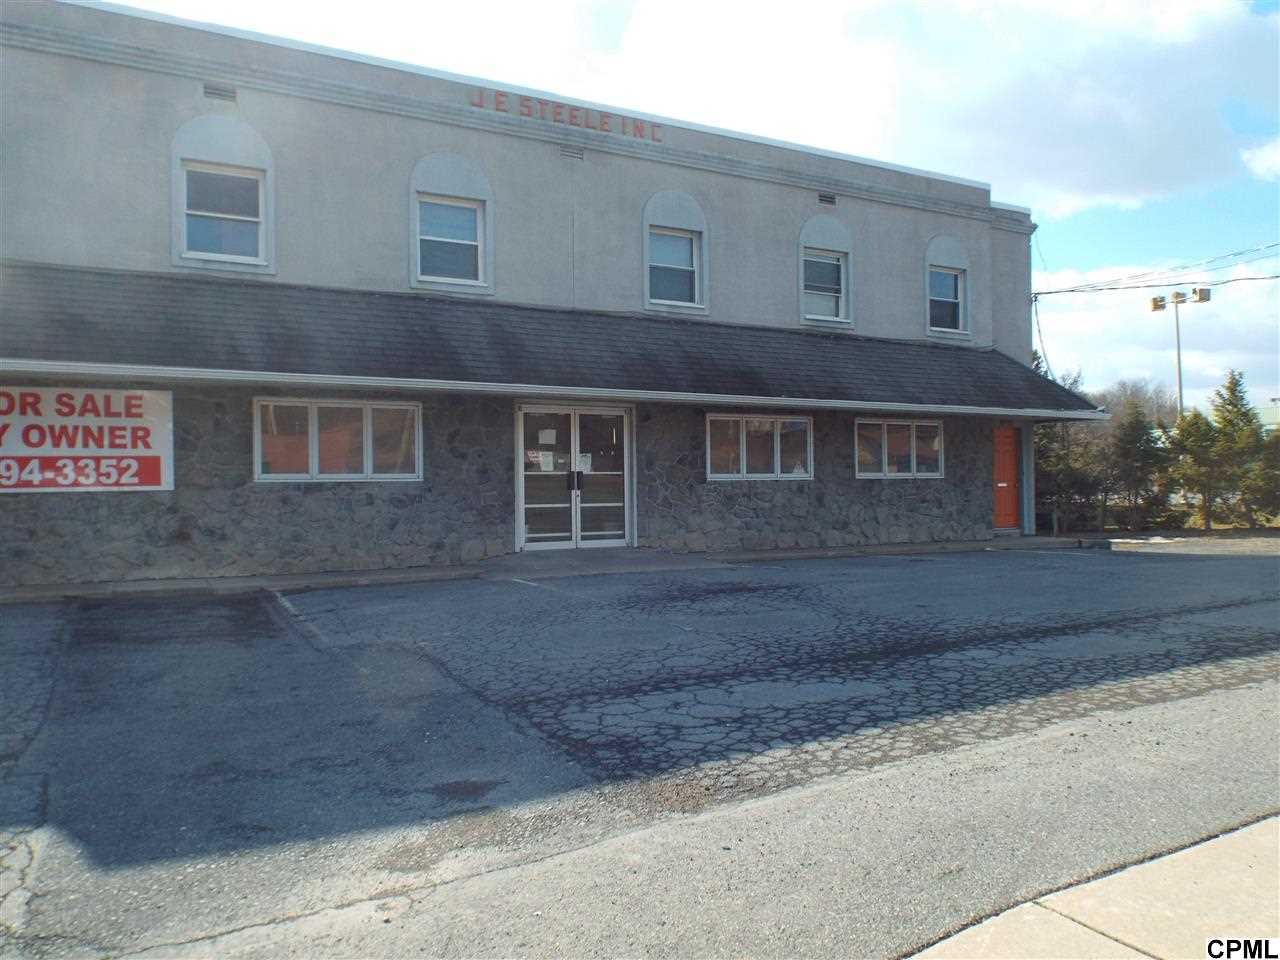 1242 W 4th St, Lewistown, PA 17044